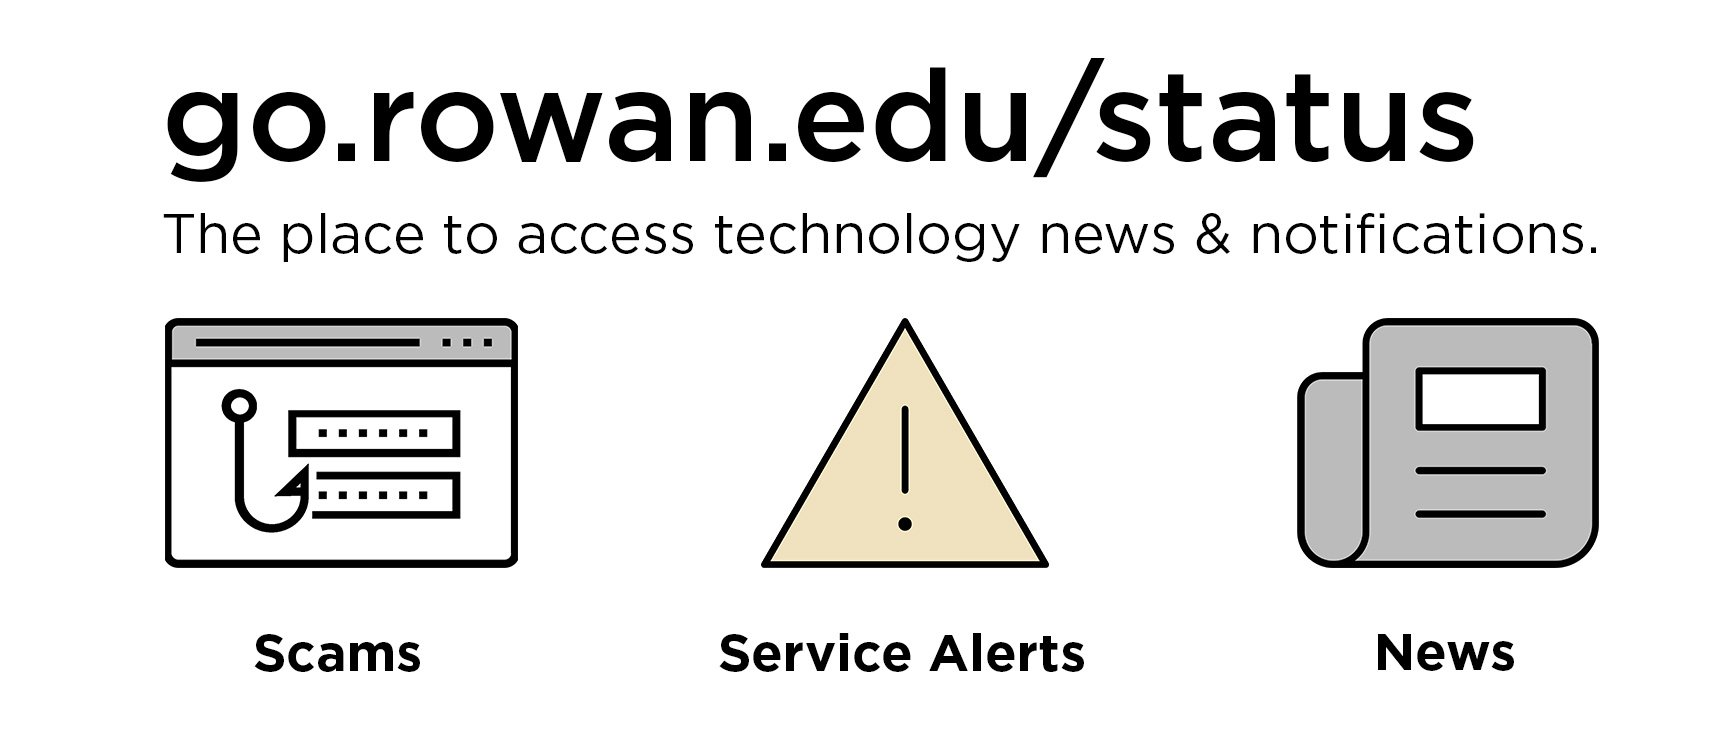 Banner image that provides link to go.rowan.edu/status, says that link is the place to access technology news & notifications, including information about scams, service alerts and news.